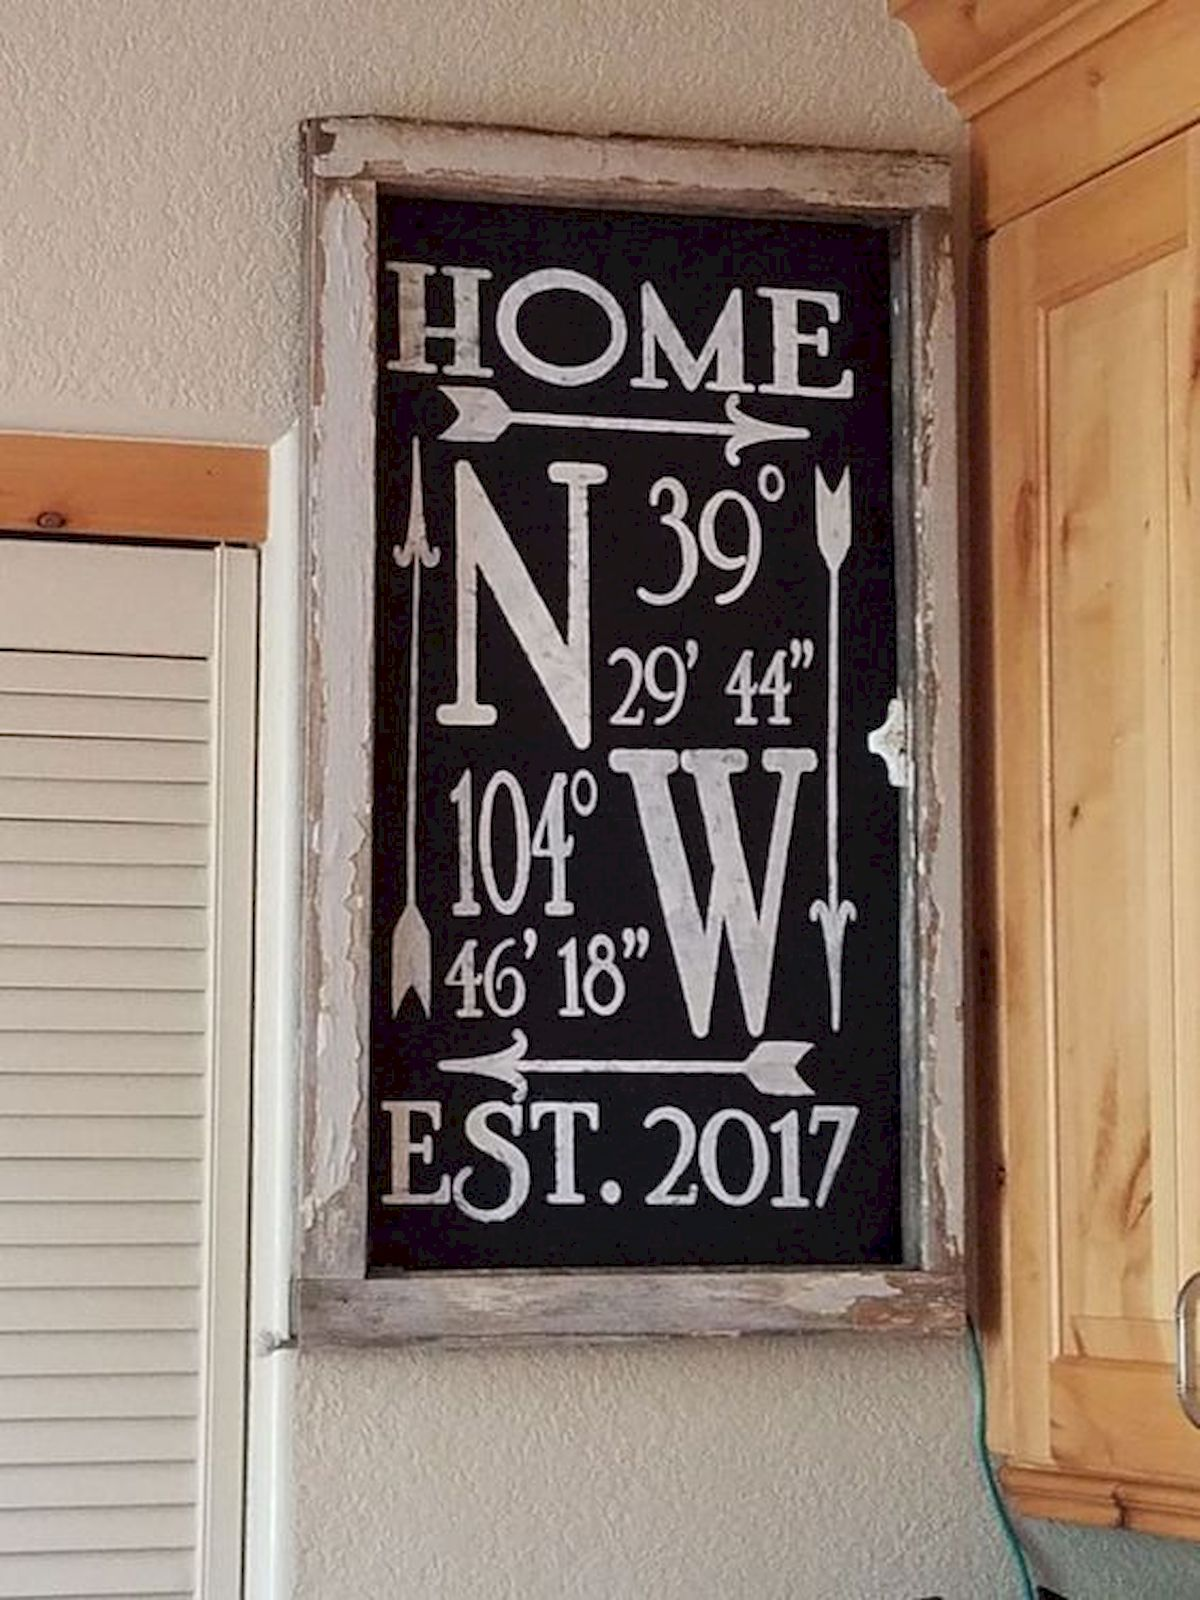 awesome sign decor 55 awesome farmhouse signs design ideas and decor  25  googodecor  farmhouse signs design ideas and decor